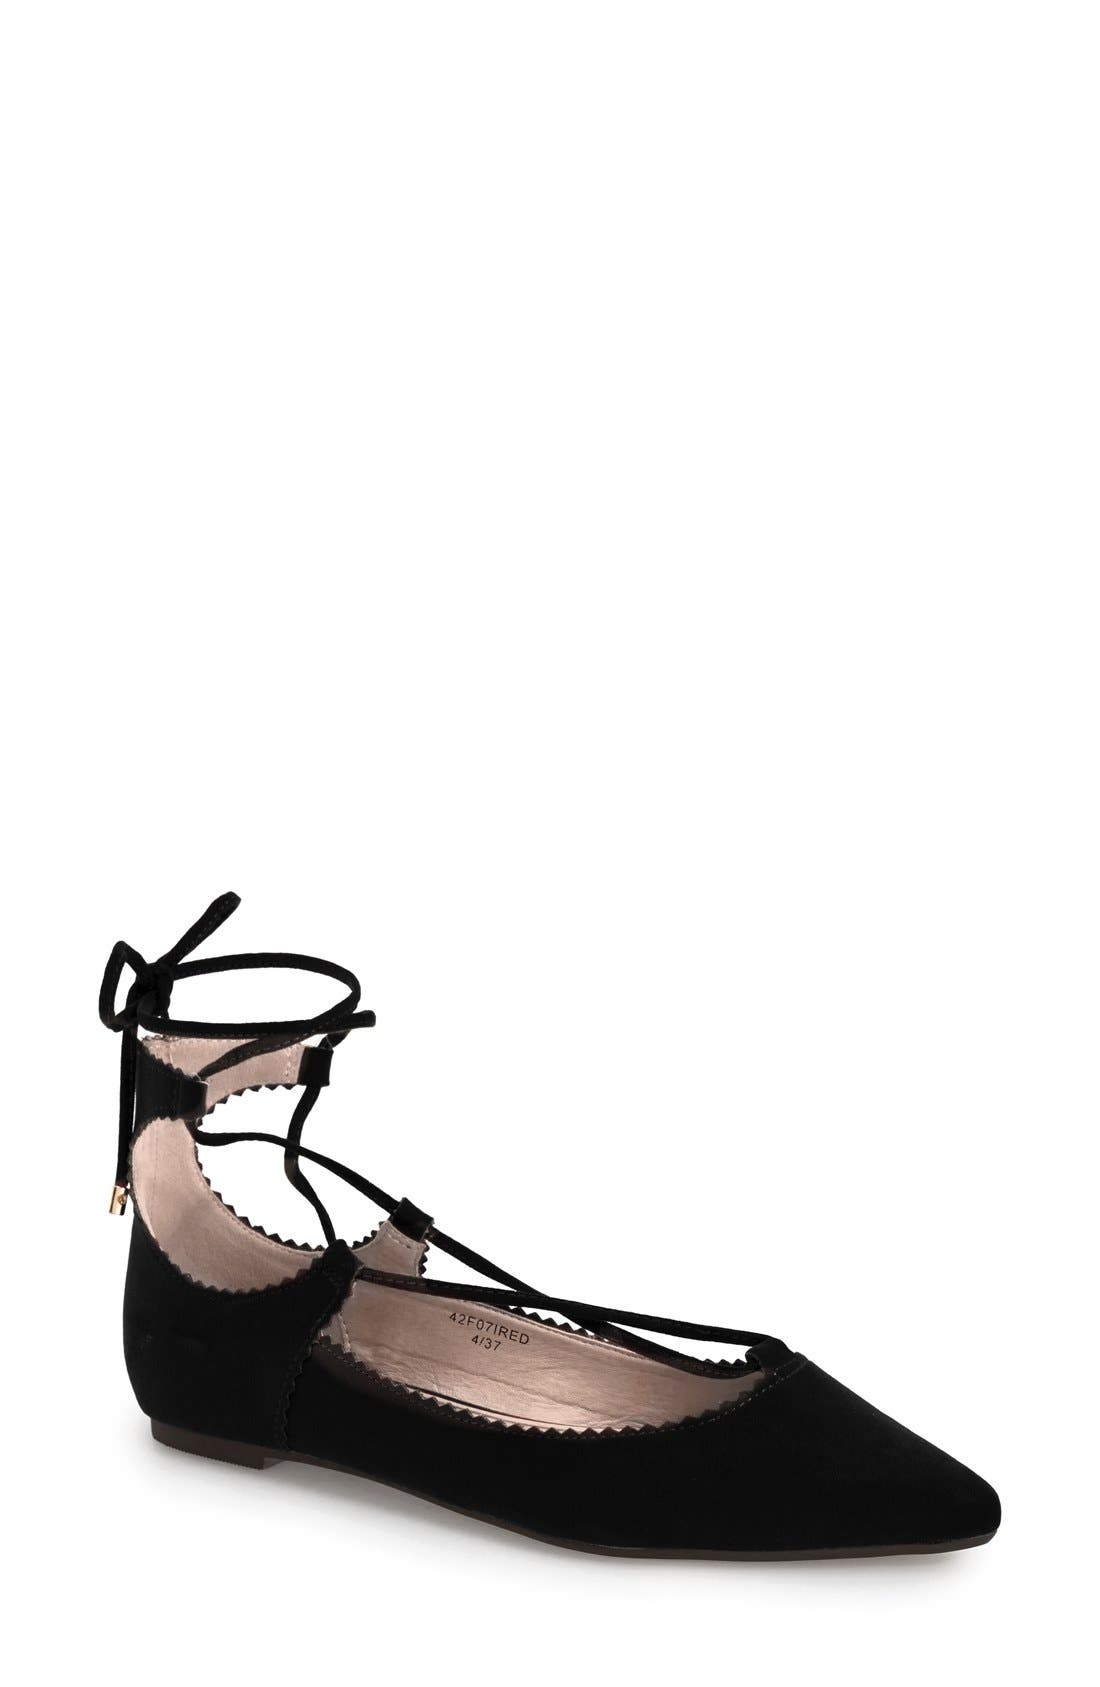 TOPSHOP, 'Finest Shillie' Lace-Up Pointy Toe Flat, Main thumbnail 1, color, 001